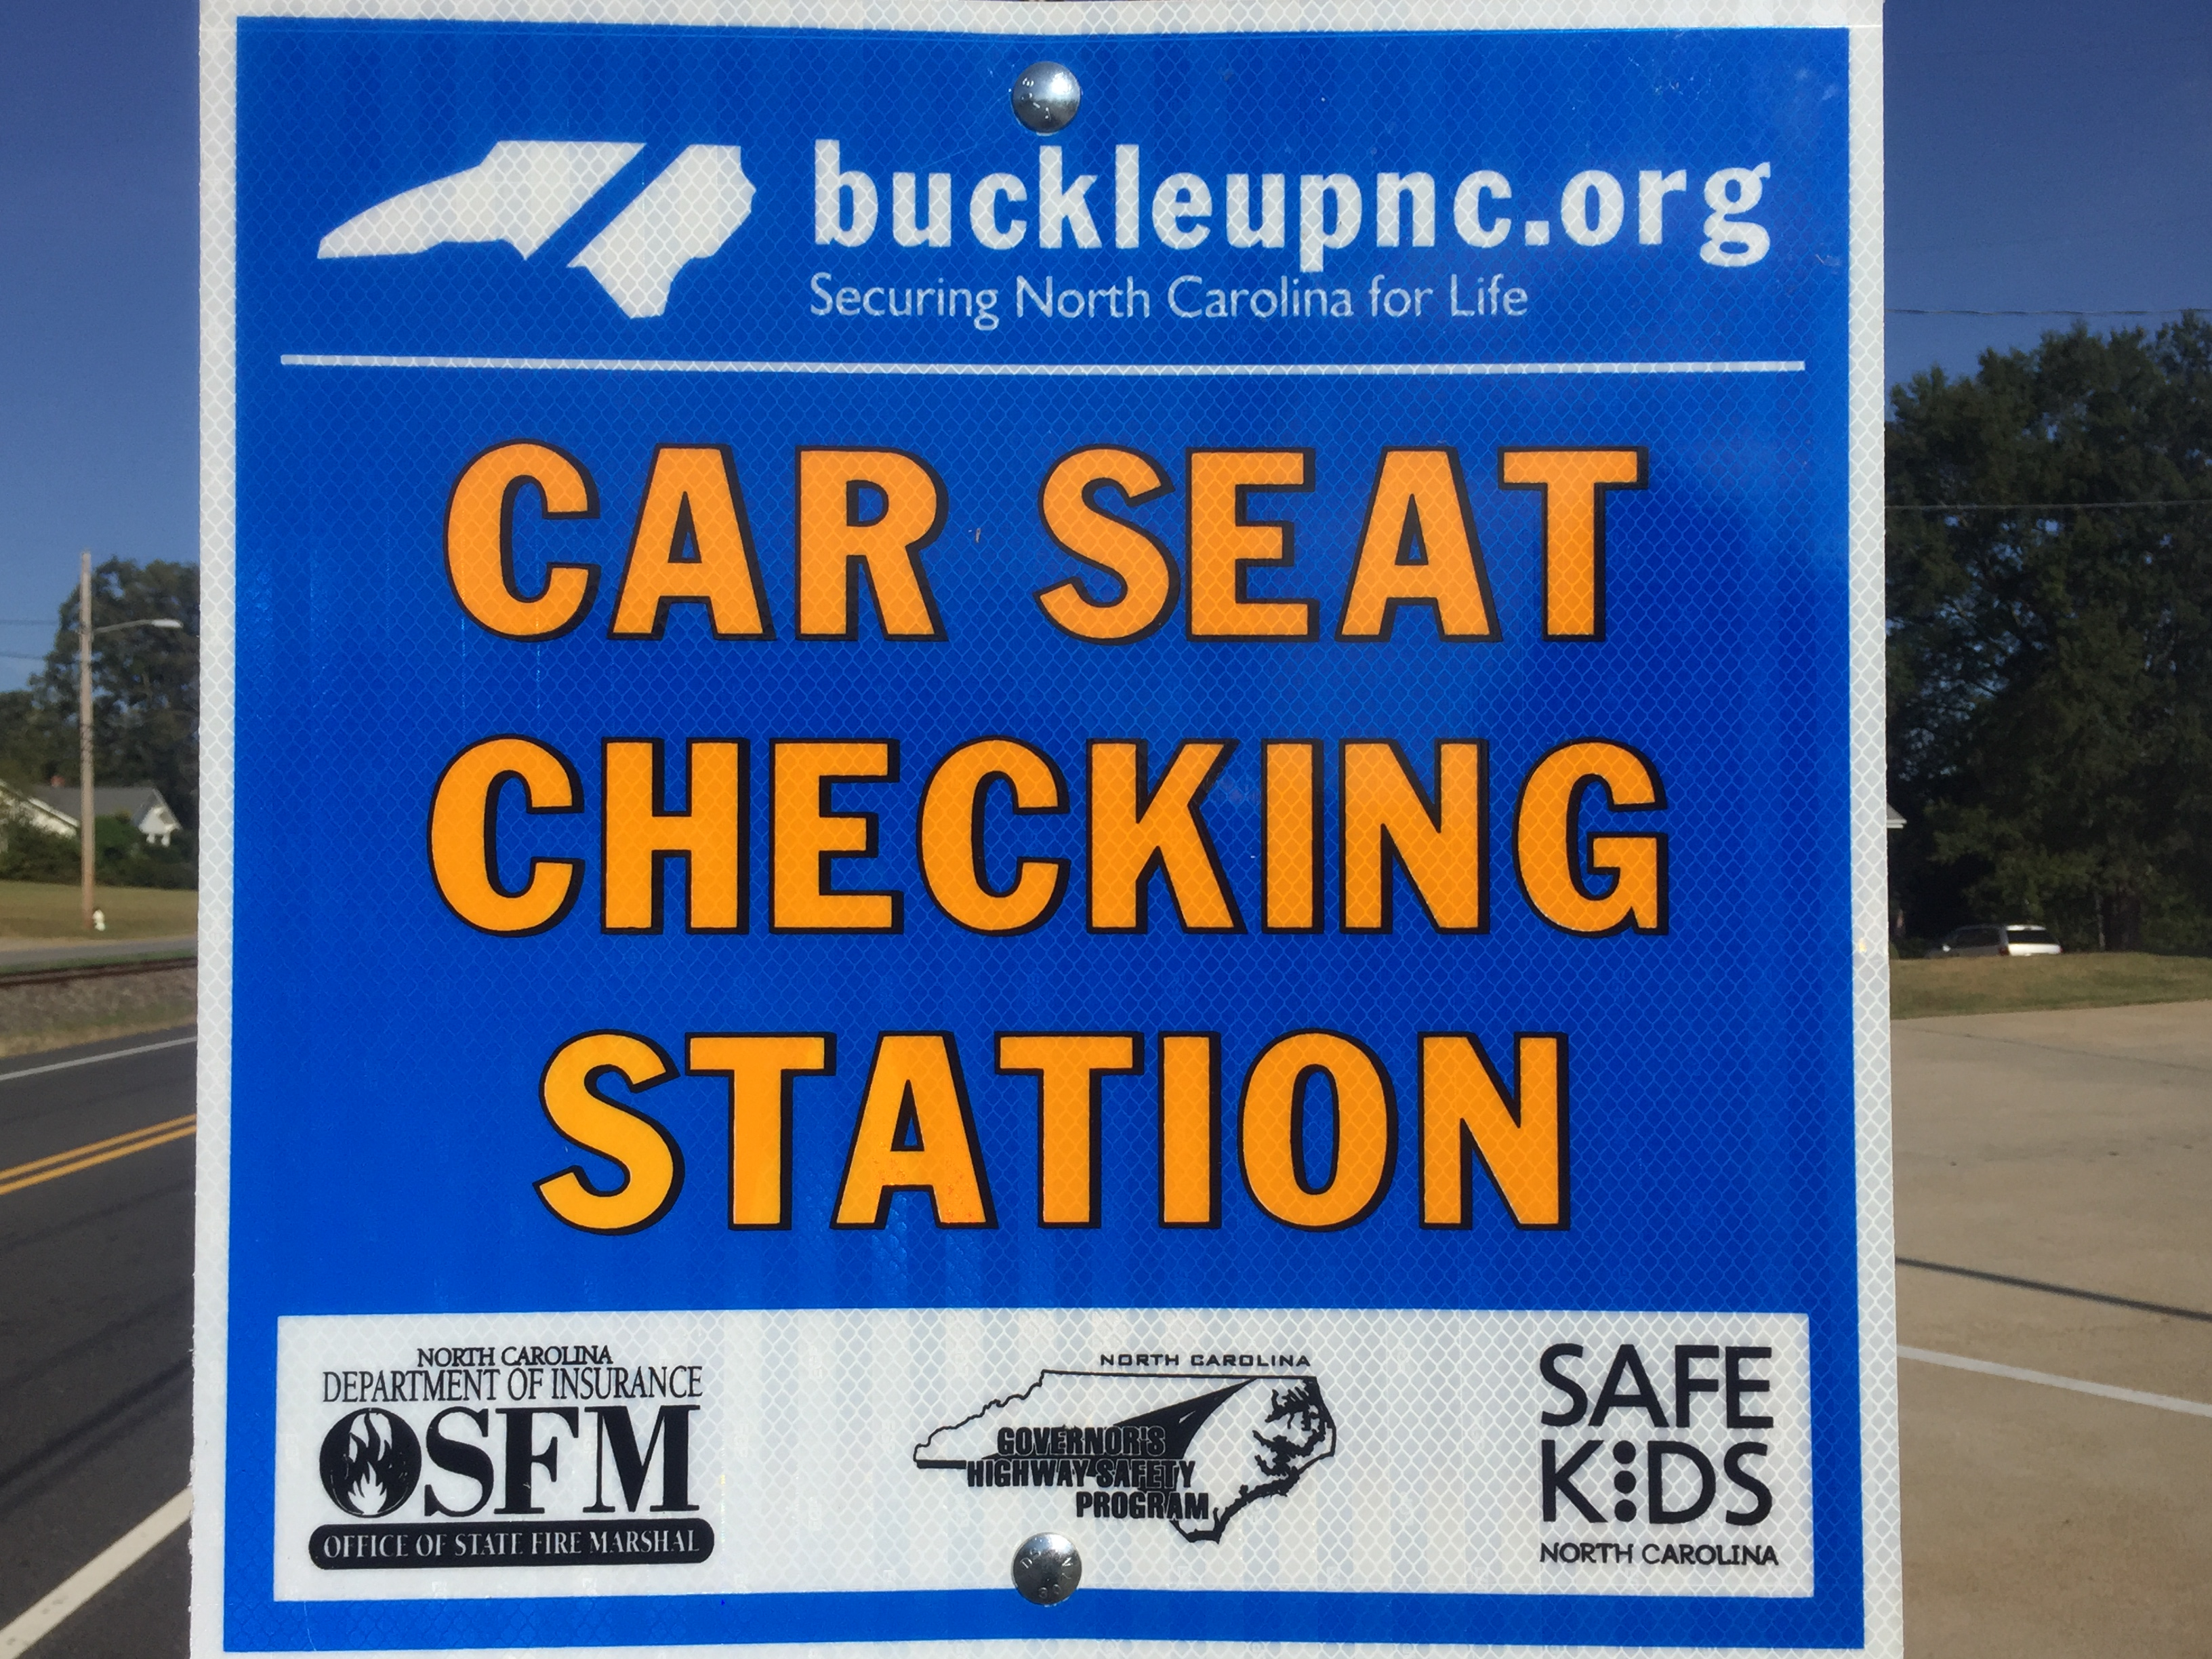 Granite Falls Fire Department Is A Permanent Car Seat Checking Station We Are Dedicated To Ensuring The Safety Of Children In Our Community